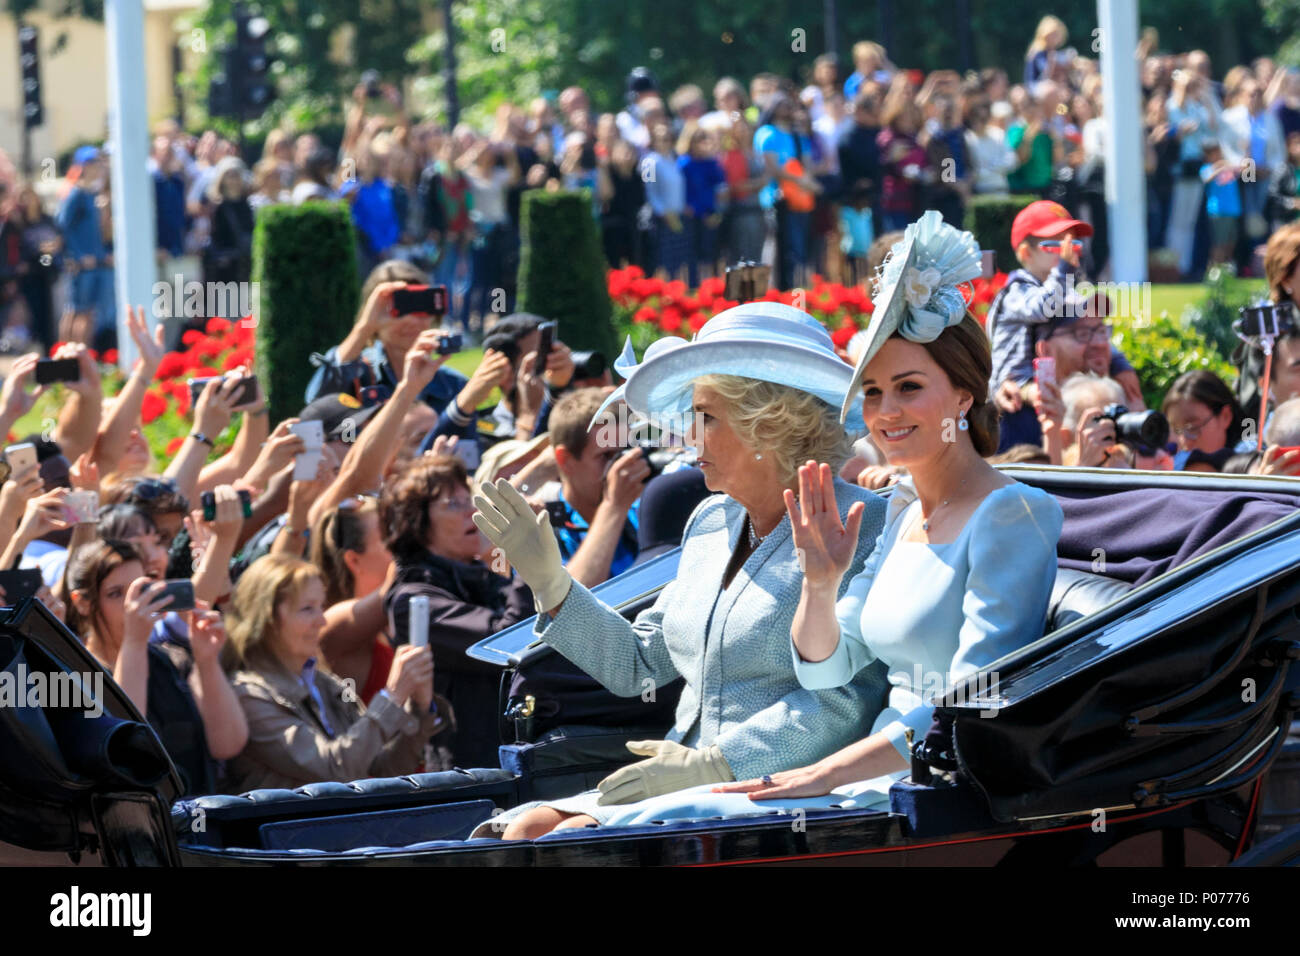 The Mall, London, UK, 9th June 2018. Catherine, Duchess of Cambridge and Camilla, Duchess of Cornwall in their carriage. The Sovereign's birthday is officially celebrated by the ceremony of Trooping the Colour, the Queen's Birthday Parade. Troops from the  Household Division, overall 1400 officers and soldiers are on parade, together with two hundred horses; over four hundred musicians from ten bands and corps of drums. The parade route extends from Buckingham Palace along The Mall to Horse Guards Parade, Whitehall and back again. Stock Photo